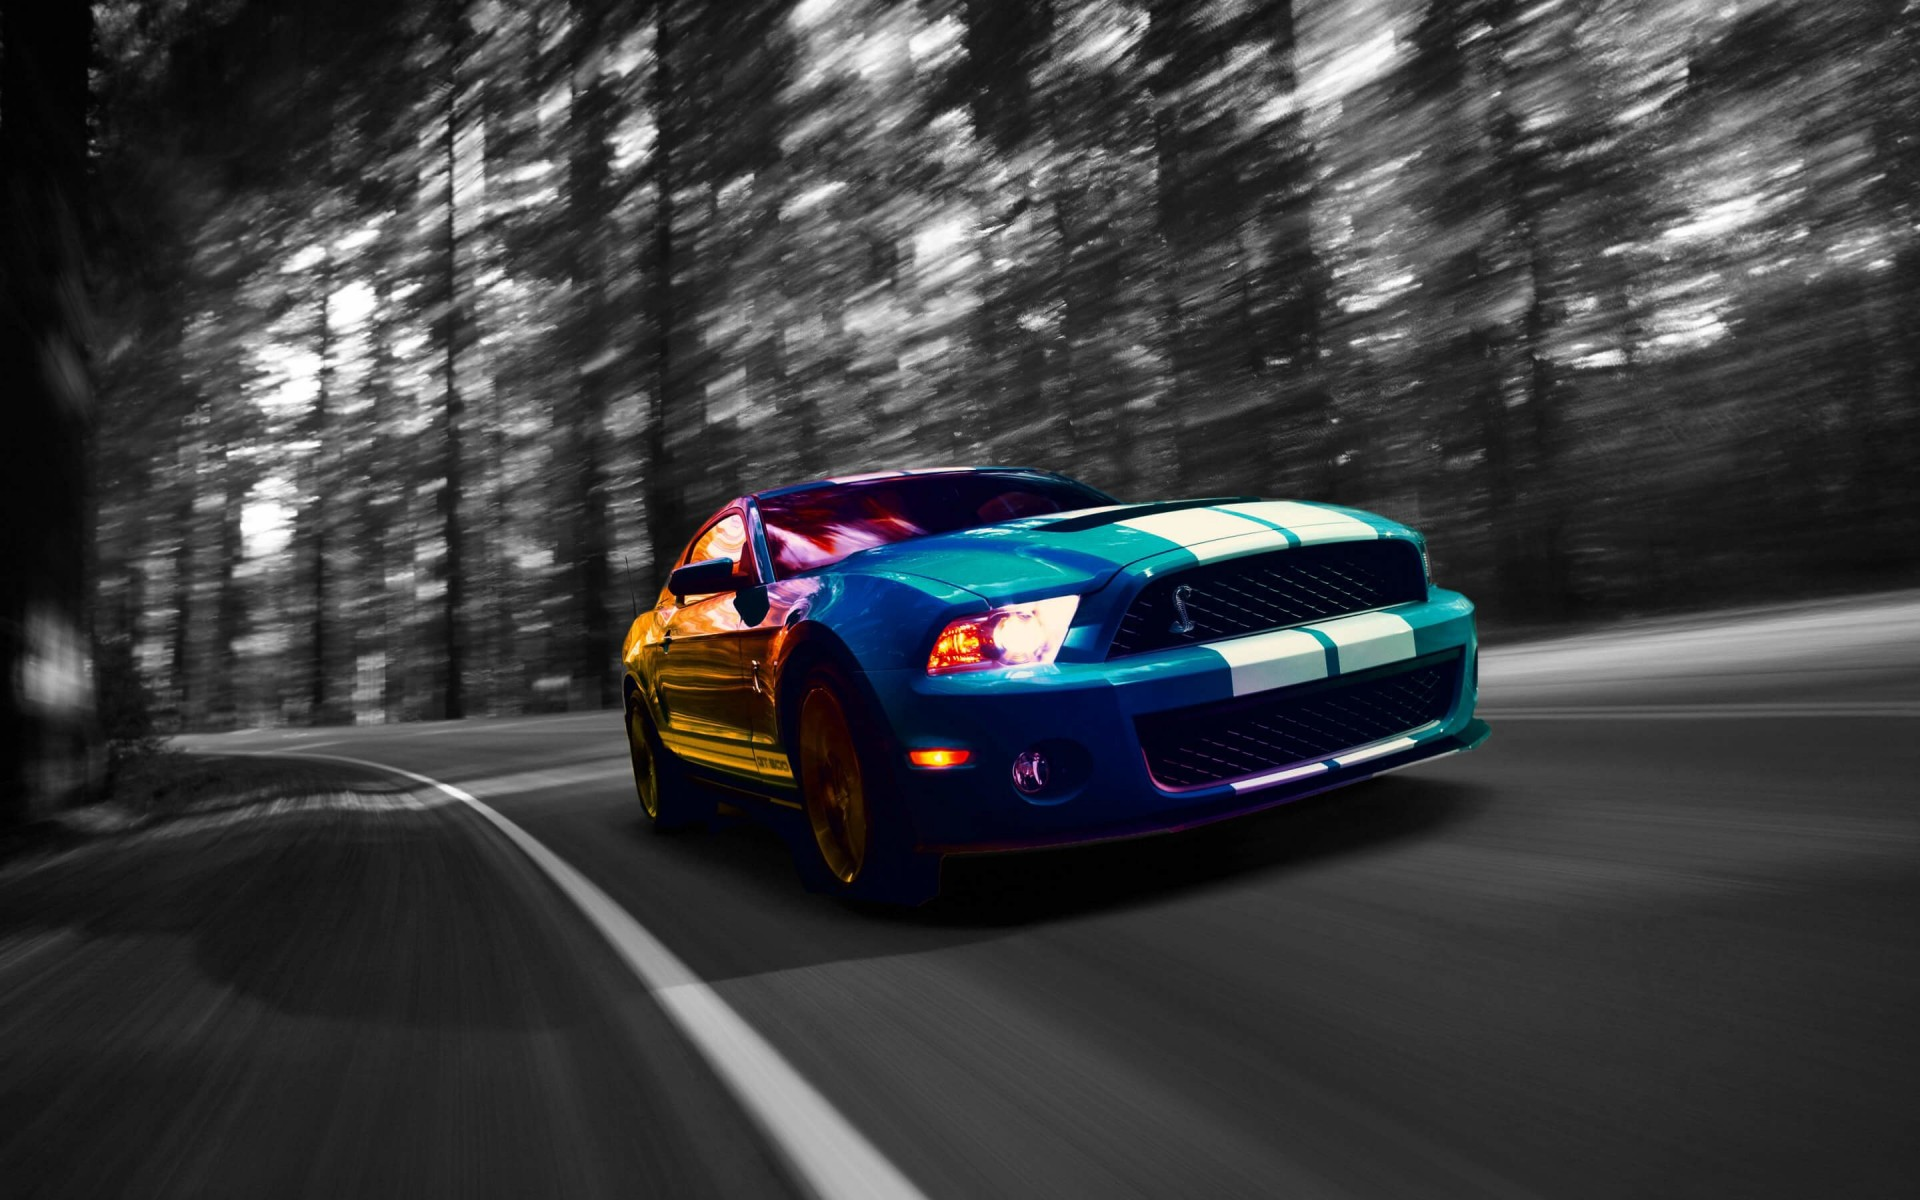 Ford Mustang Shelby GT500 Wallpaper for Desktop 1920x1200